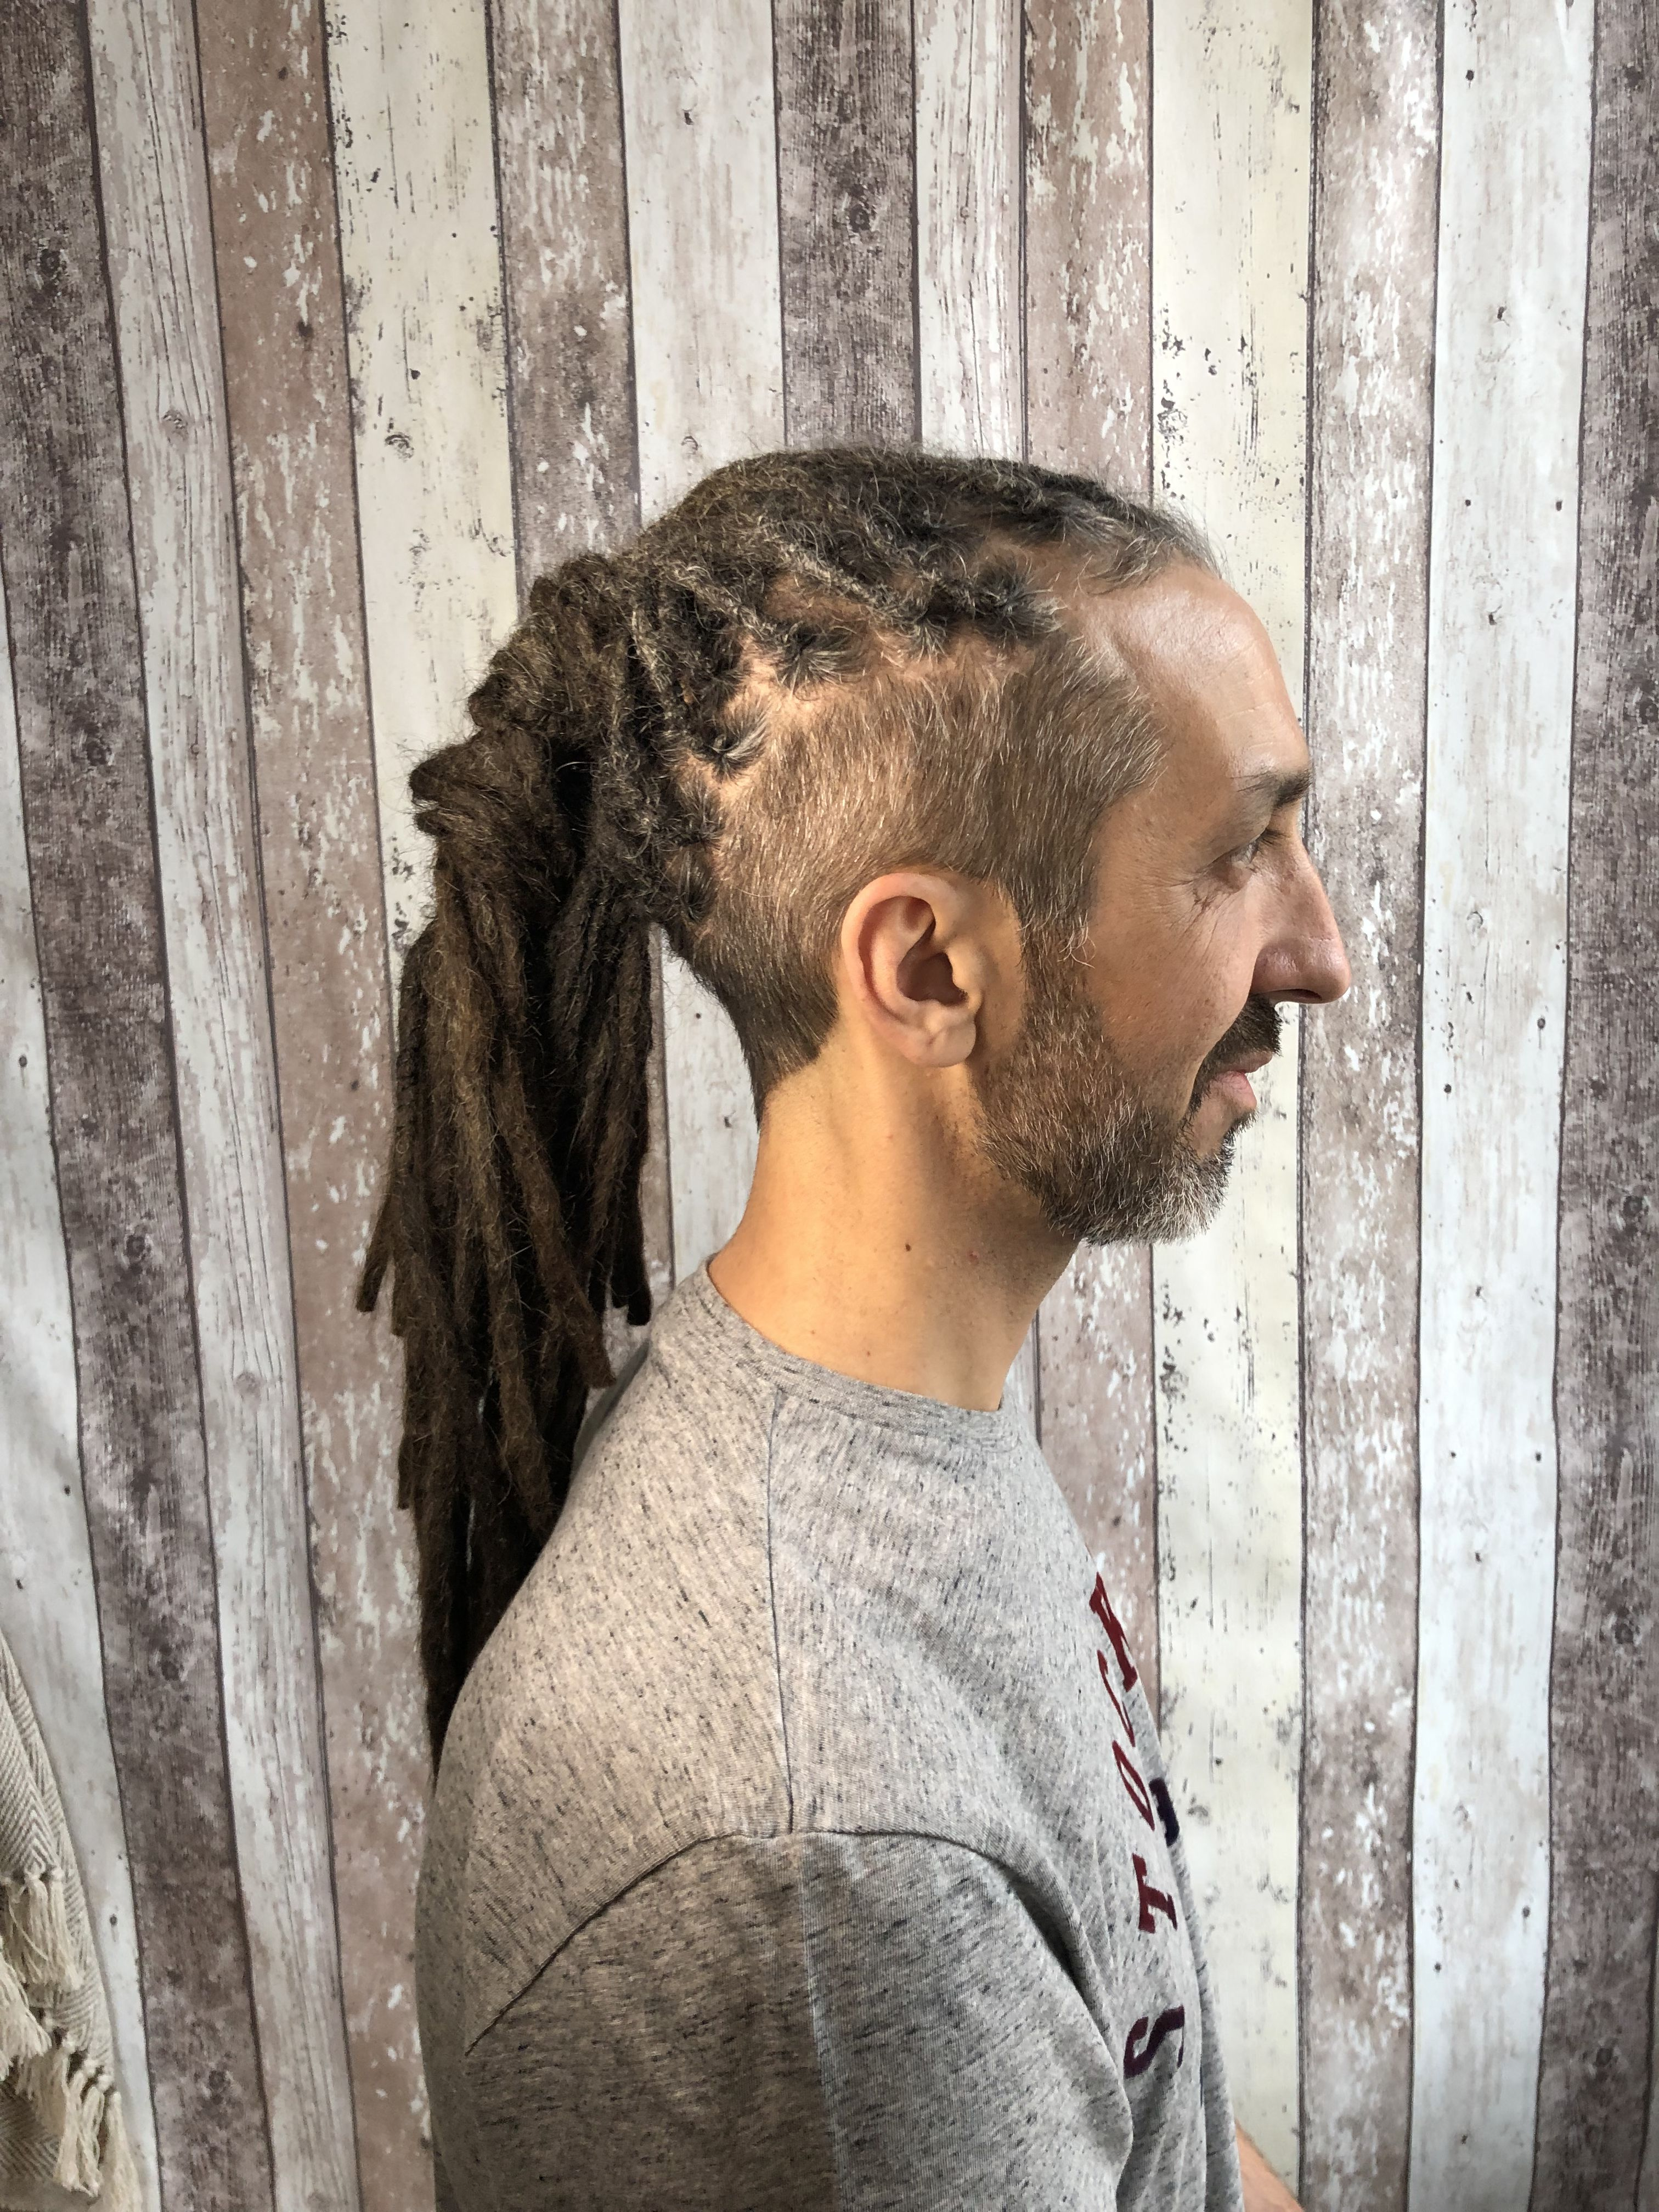 Cedric Was Looking For Someone Qualified And With Skills Of Dreads Dreadlocks In Marseille Since Bim Bim Aka Dr Dreadlock Dreads Dreadlocks Dreads Naturelles